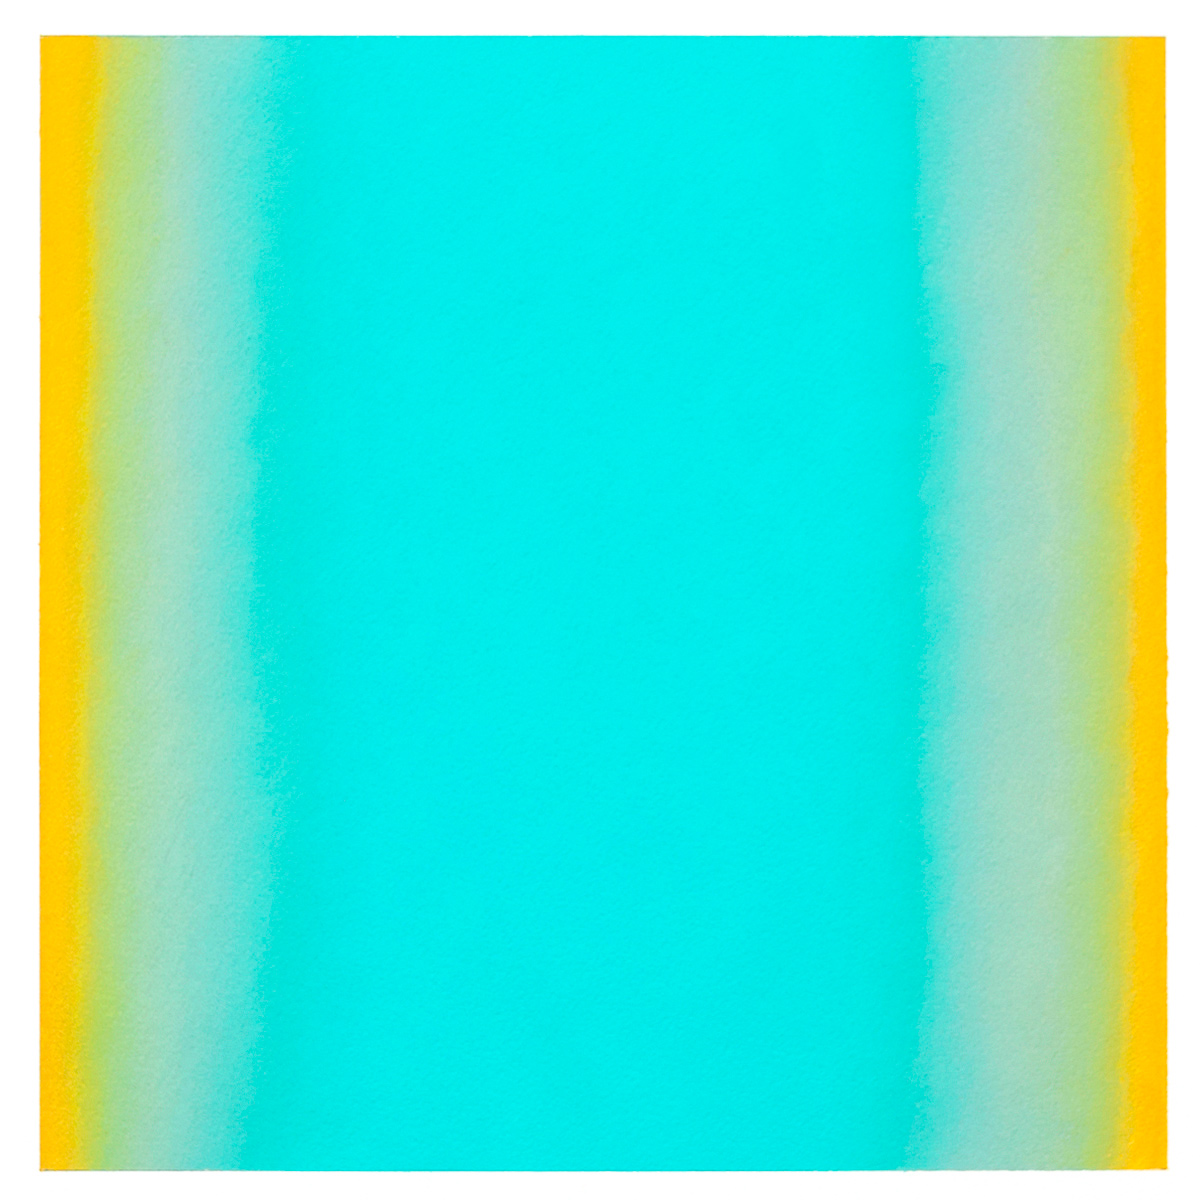 Counterpoint #16, 2012, pastel on paper, image 14 x 14 in. (36 x 36 cm.), sheet 30 x 22 in. (76 x 56 cm.)